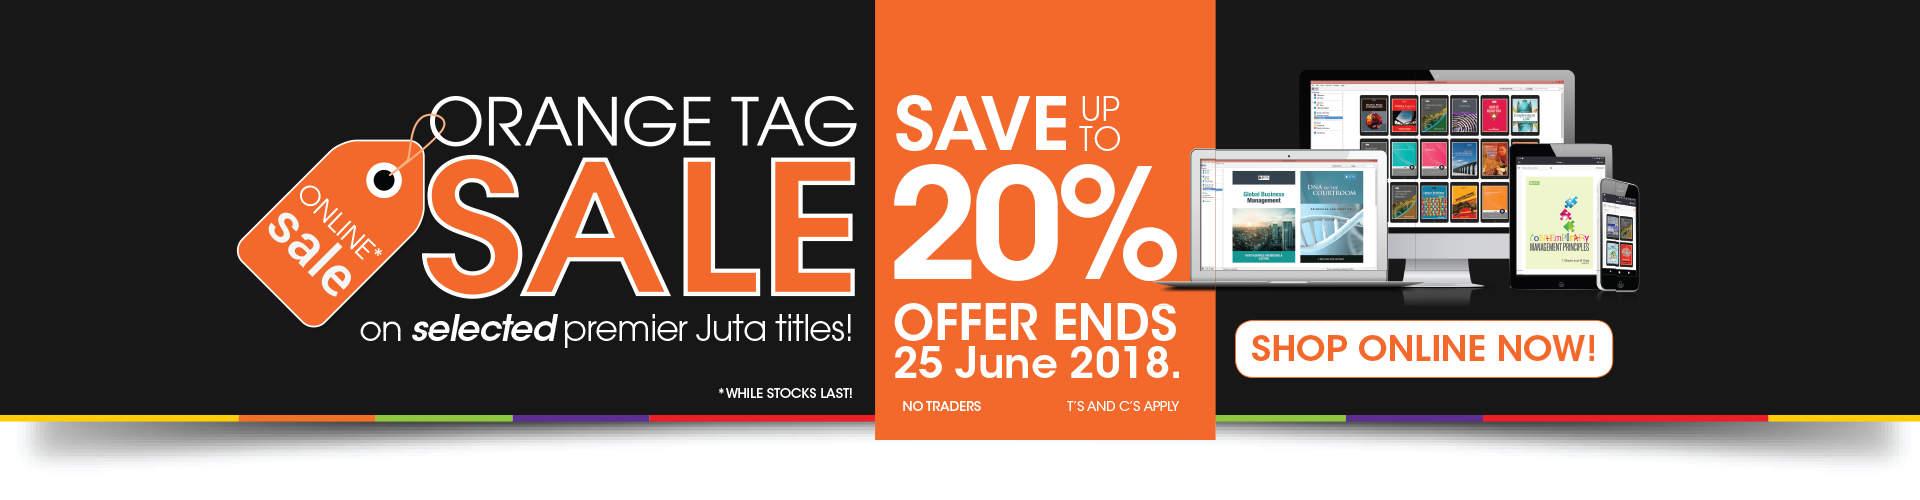 Orange Tag Sale - Save up to 20% on selected premier titles! Offer ends 25 June 2018.